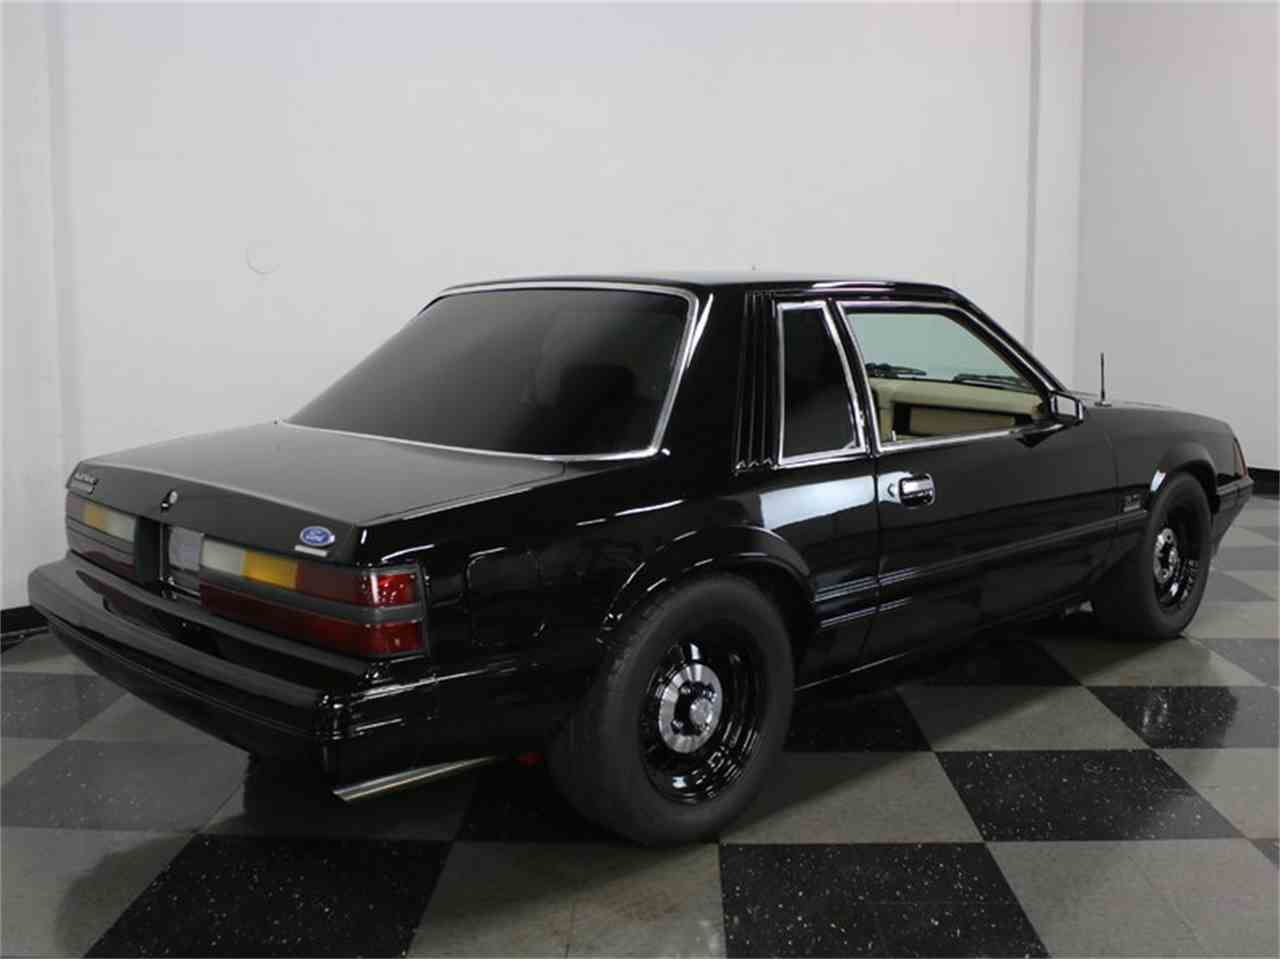 Large Picture of 1986 Ford Mustang SSP Interceptor located in Ft Worth Texas - $24,995.00 Offered by Streetside Classics - Dallas / Fort Worth - JZNT